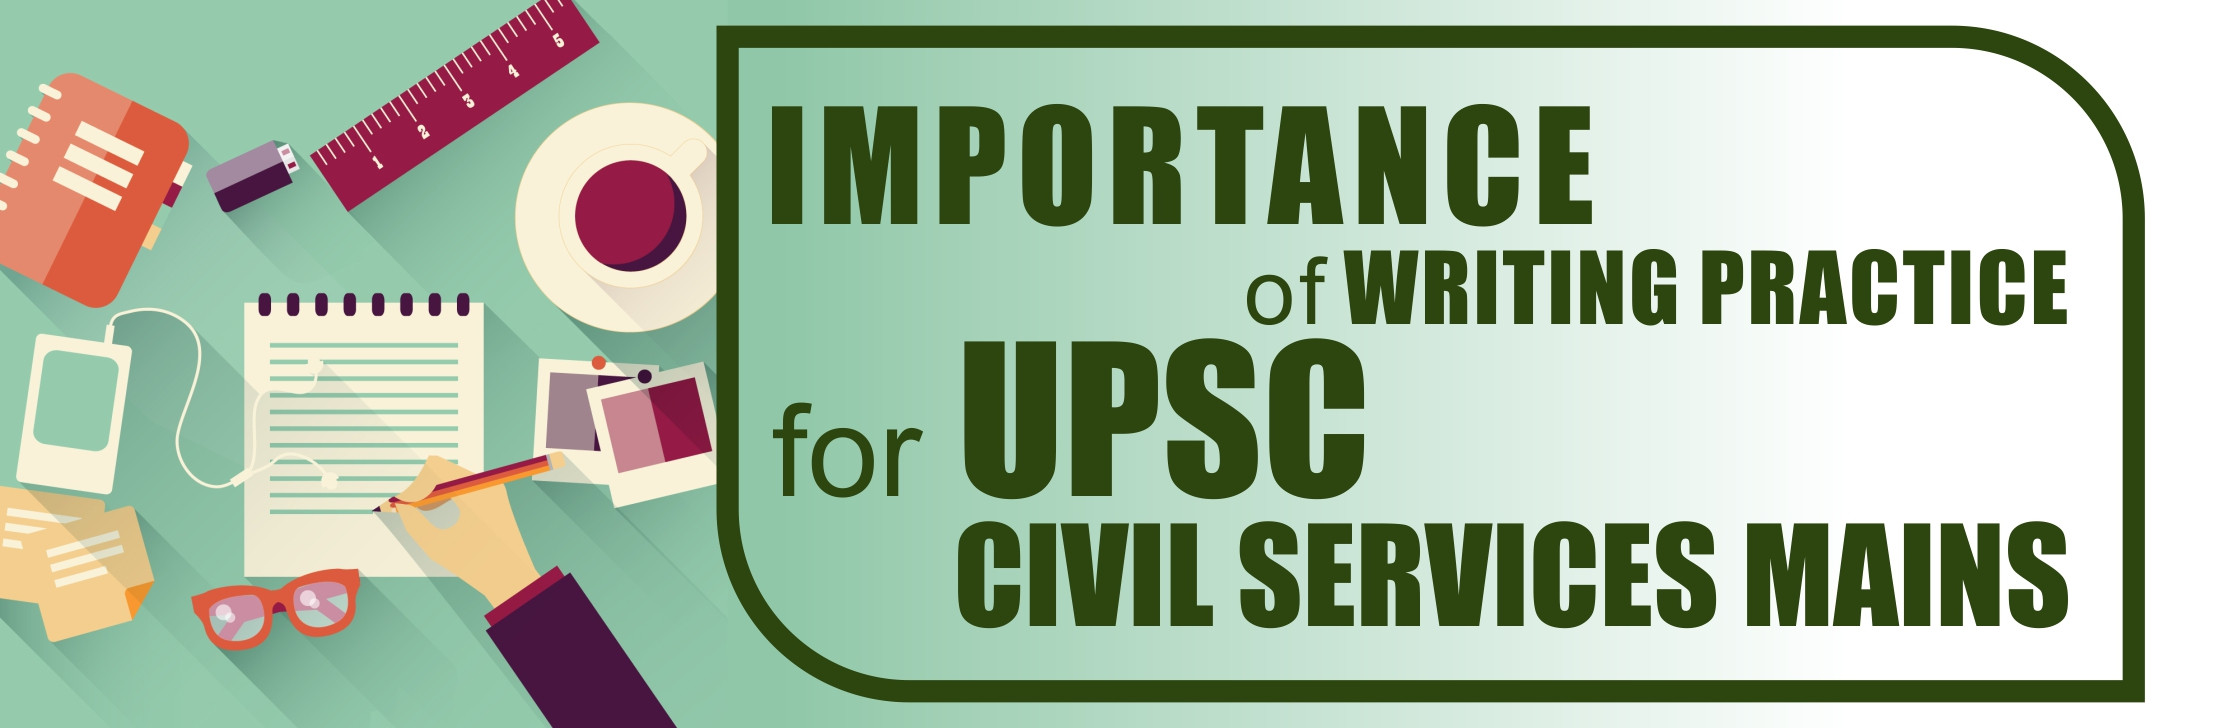 Importance of Writing Practice for UPSC Civil Services Mains